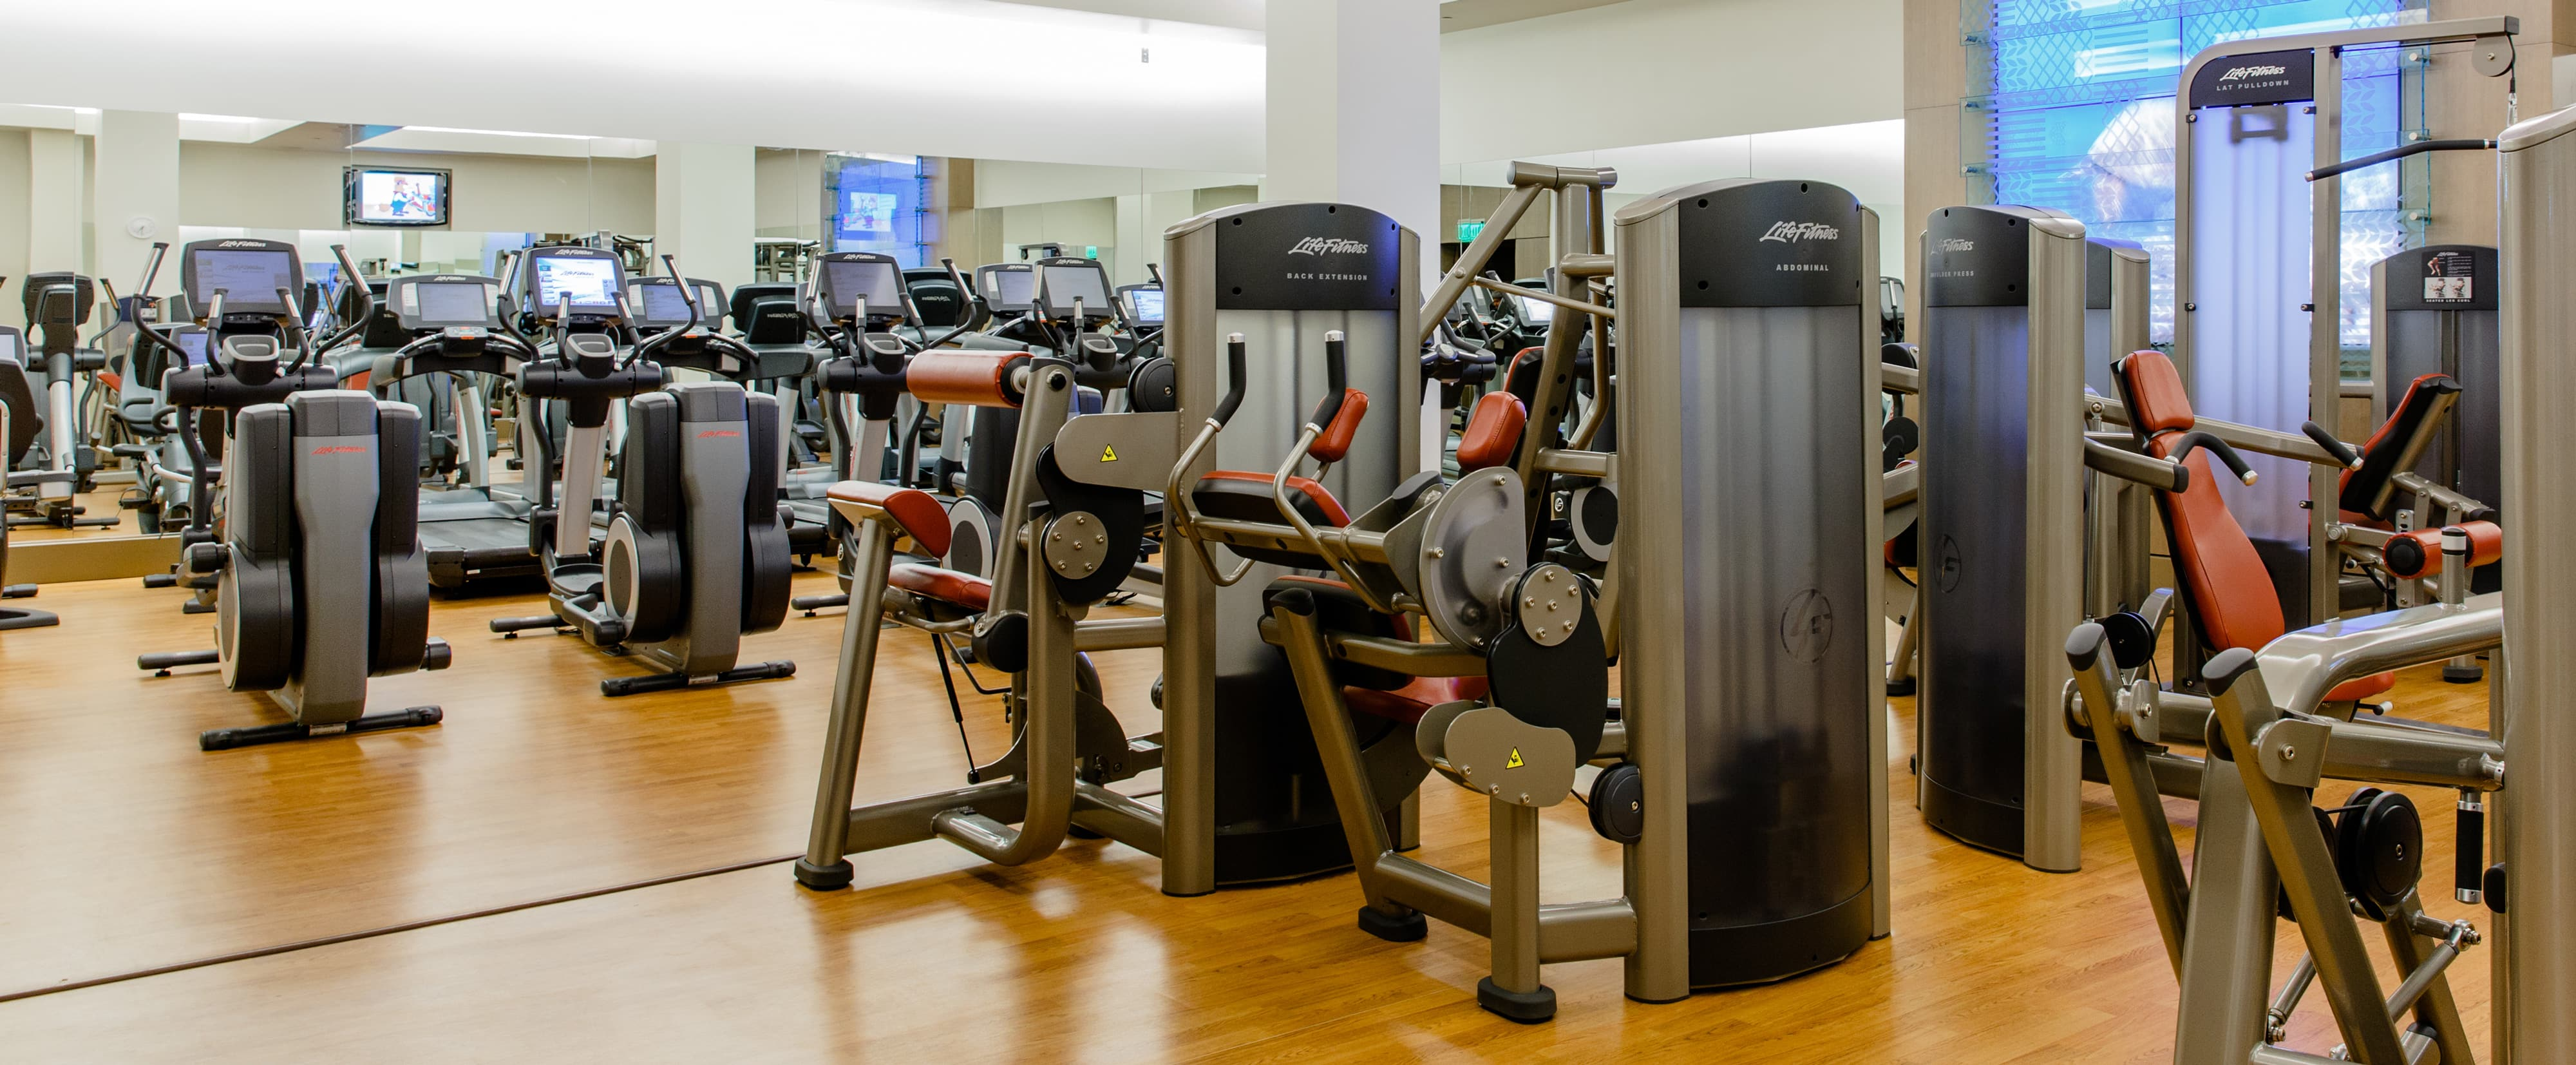 Life Fitness elliptical machines along a mirrored wall inside Mikimiki Fitness Center